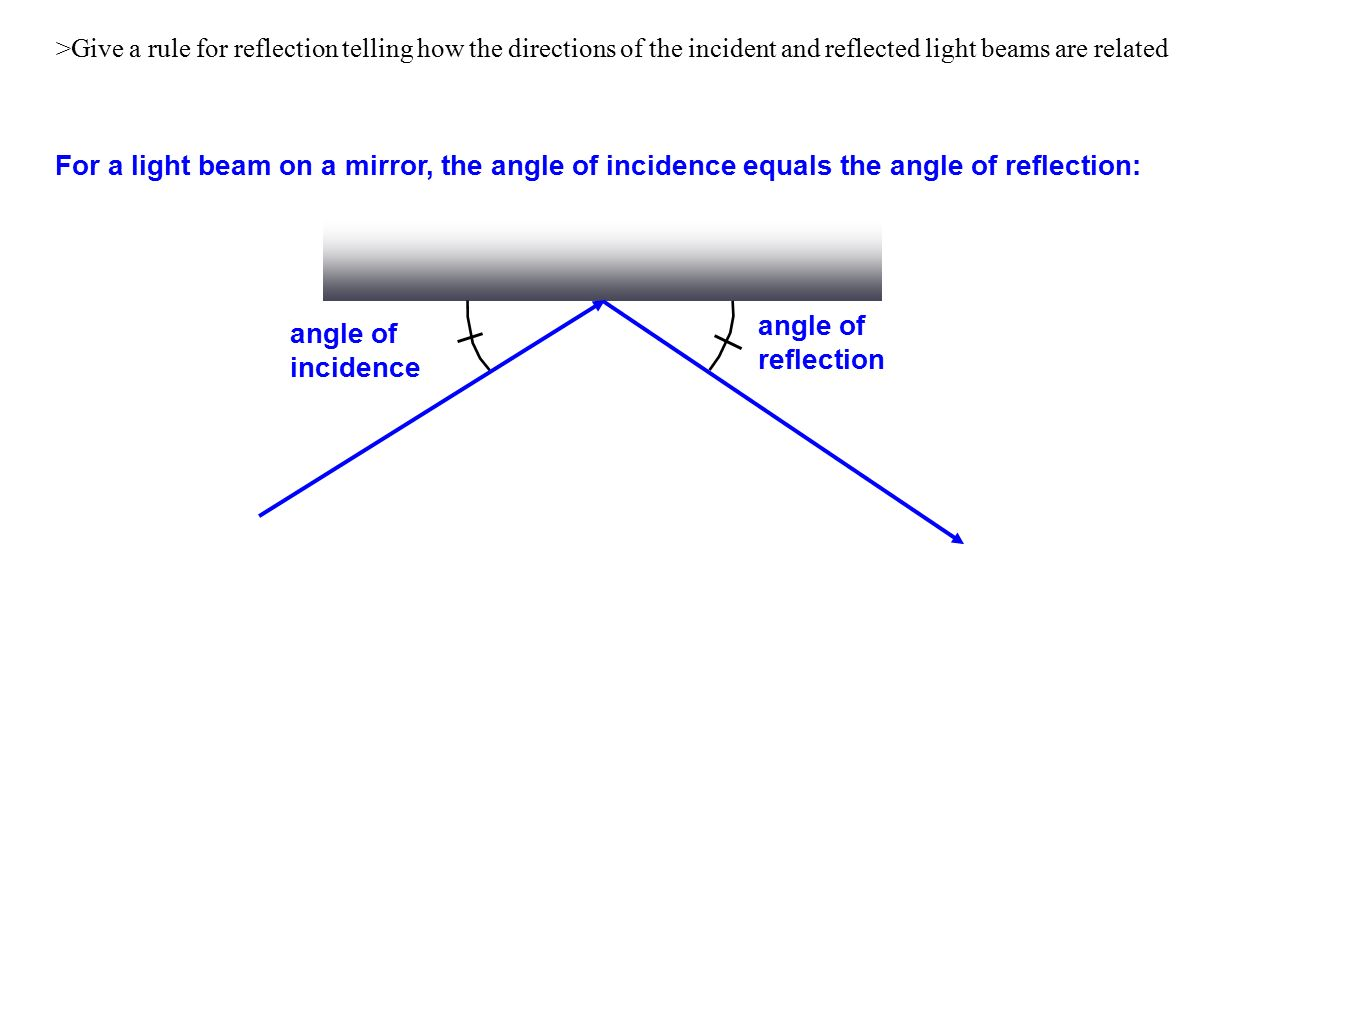 hight resolution of 2 give a rule for reflection telling how the directions of the incident and reflected light beams are related for a light beam on a mirror the angle of